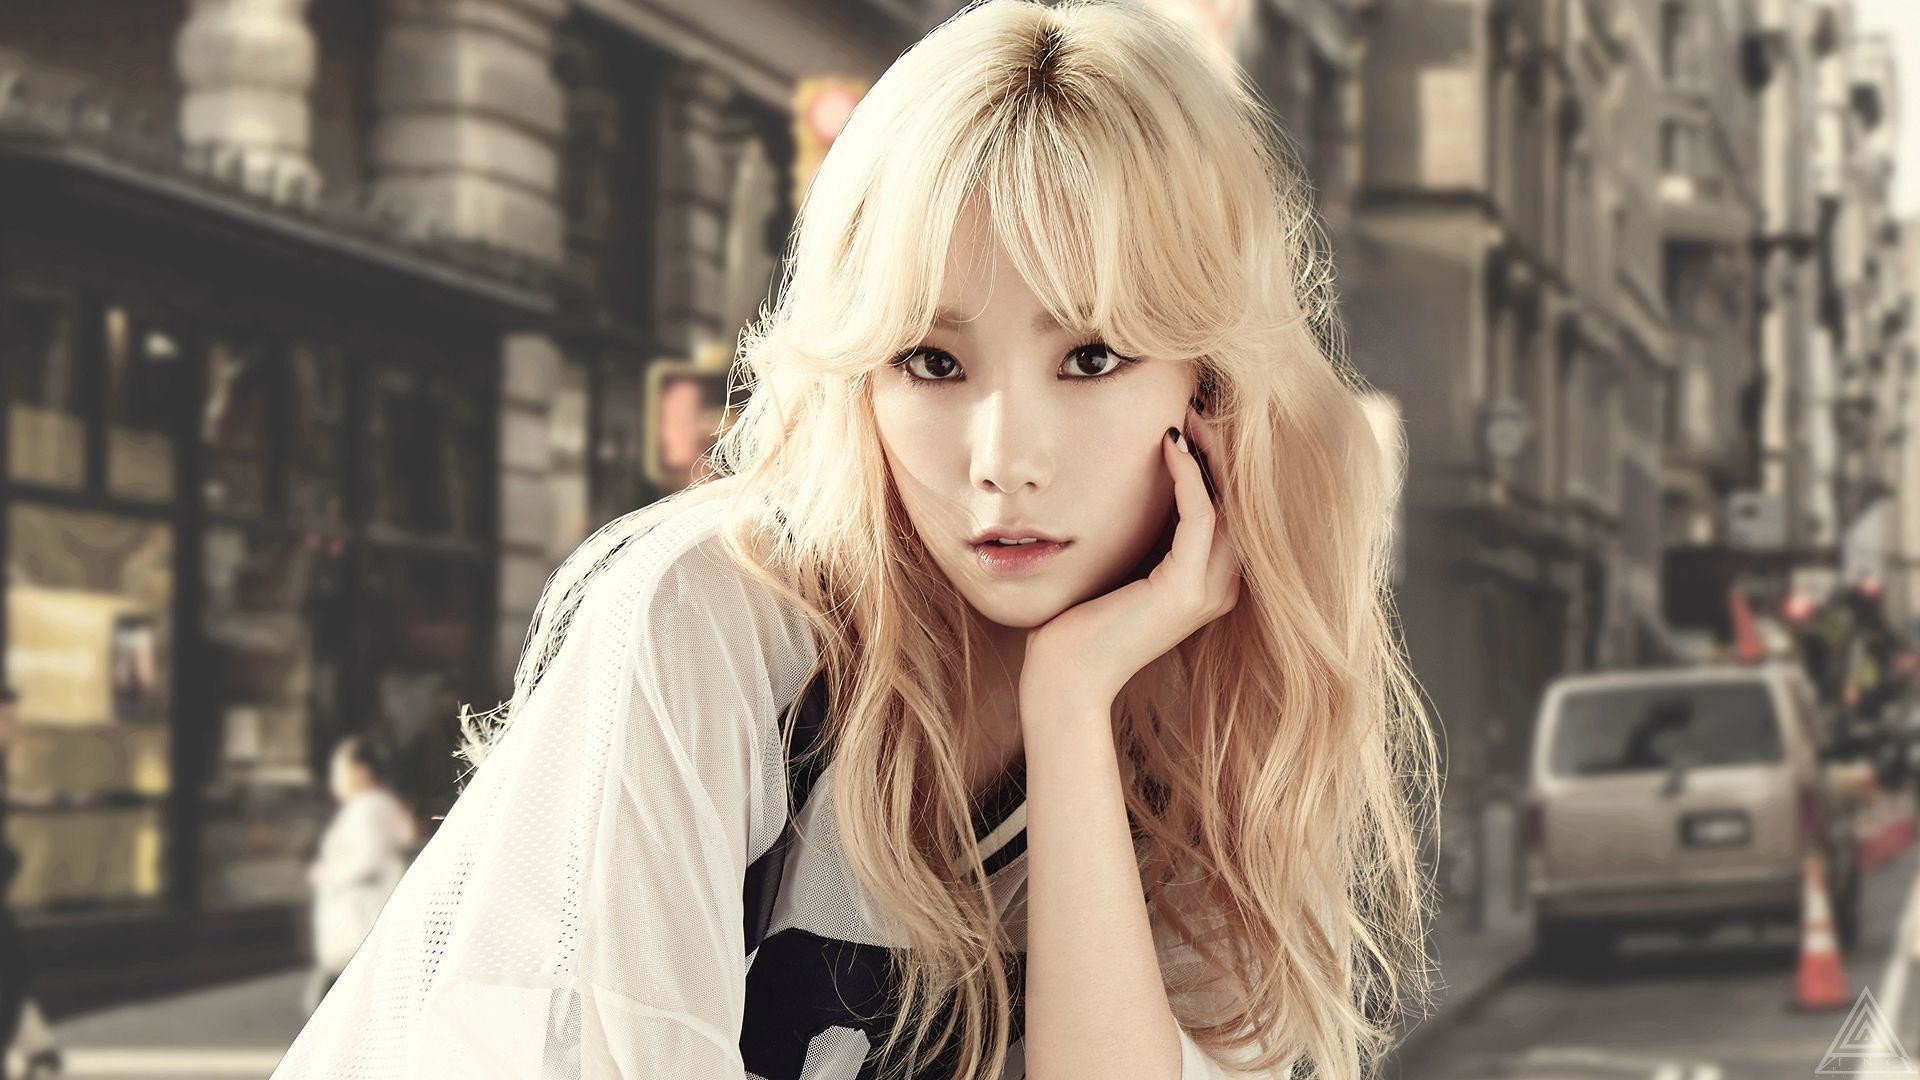 Res: 1920x1080, Soshipapers - SNSD Taeyeon wallpaper